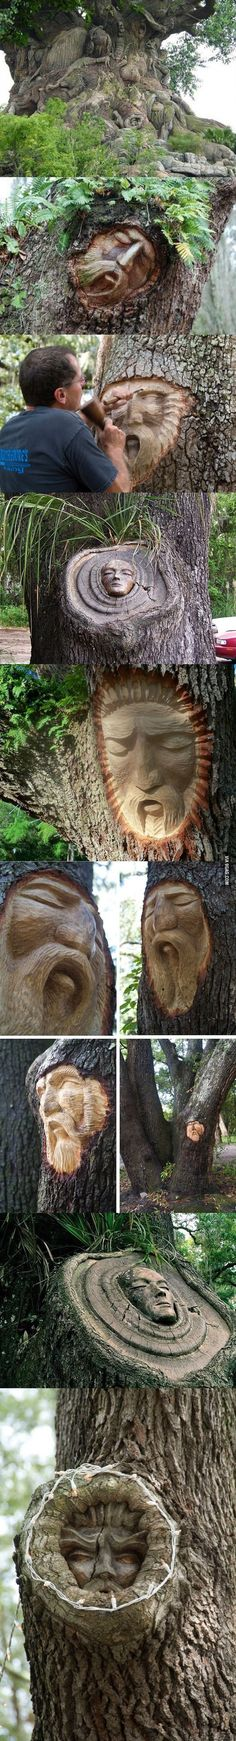 I'm not sure this is very kind to the trees....but it is amazing.